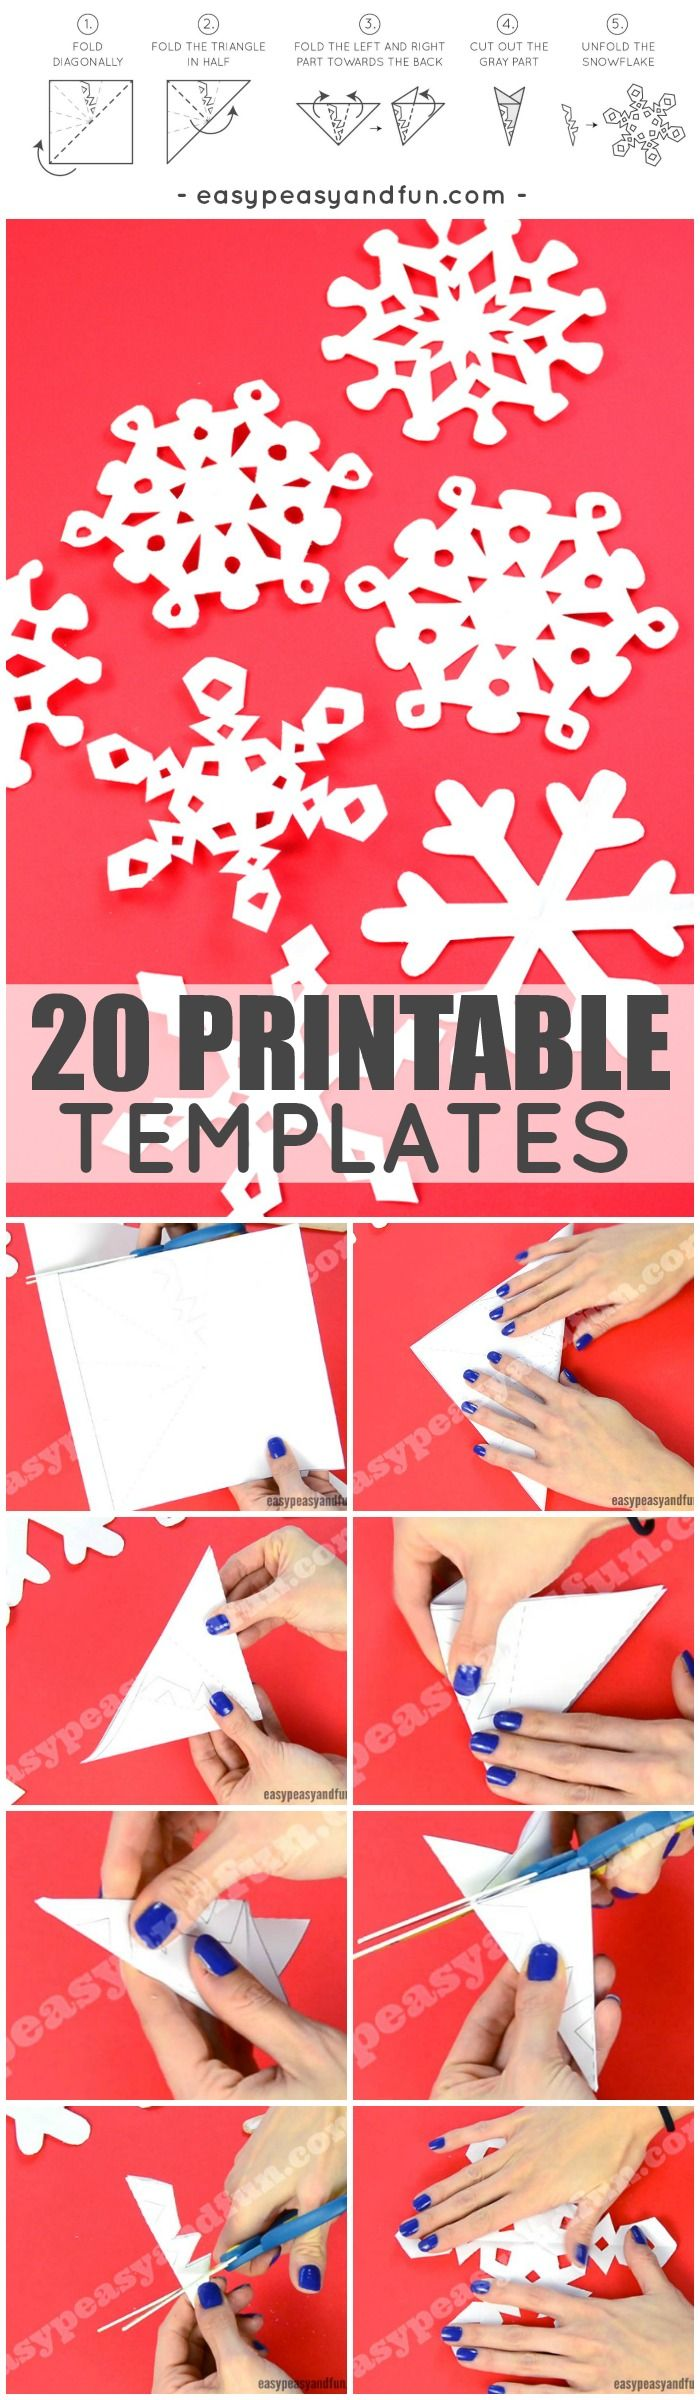 How To Make Paper Snowflakes with 20 Printable Templates and Designs! So many great ideas for kids to make gorgeous snowflakes this winter! #snowflakecrafts #wintercrafts